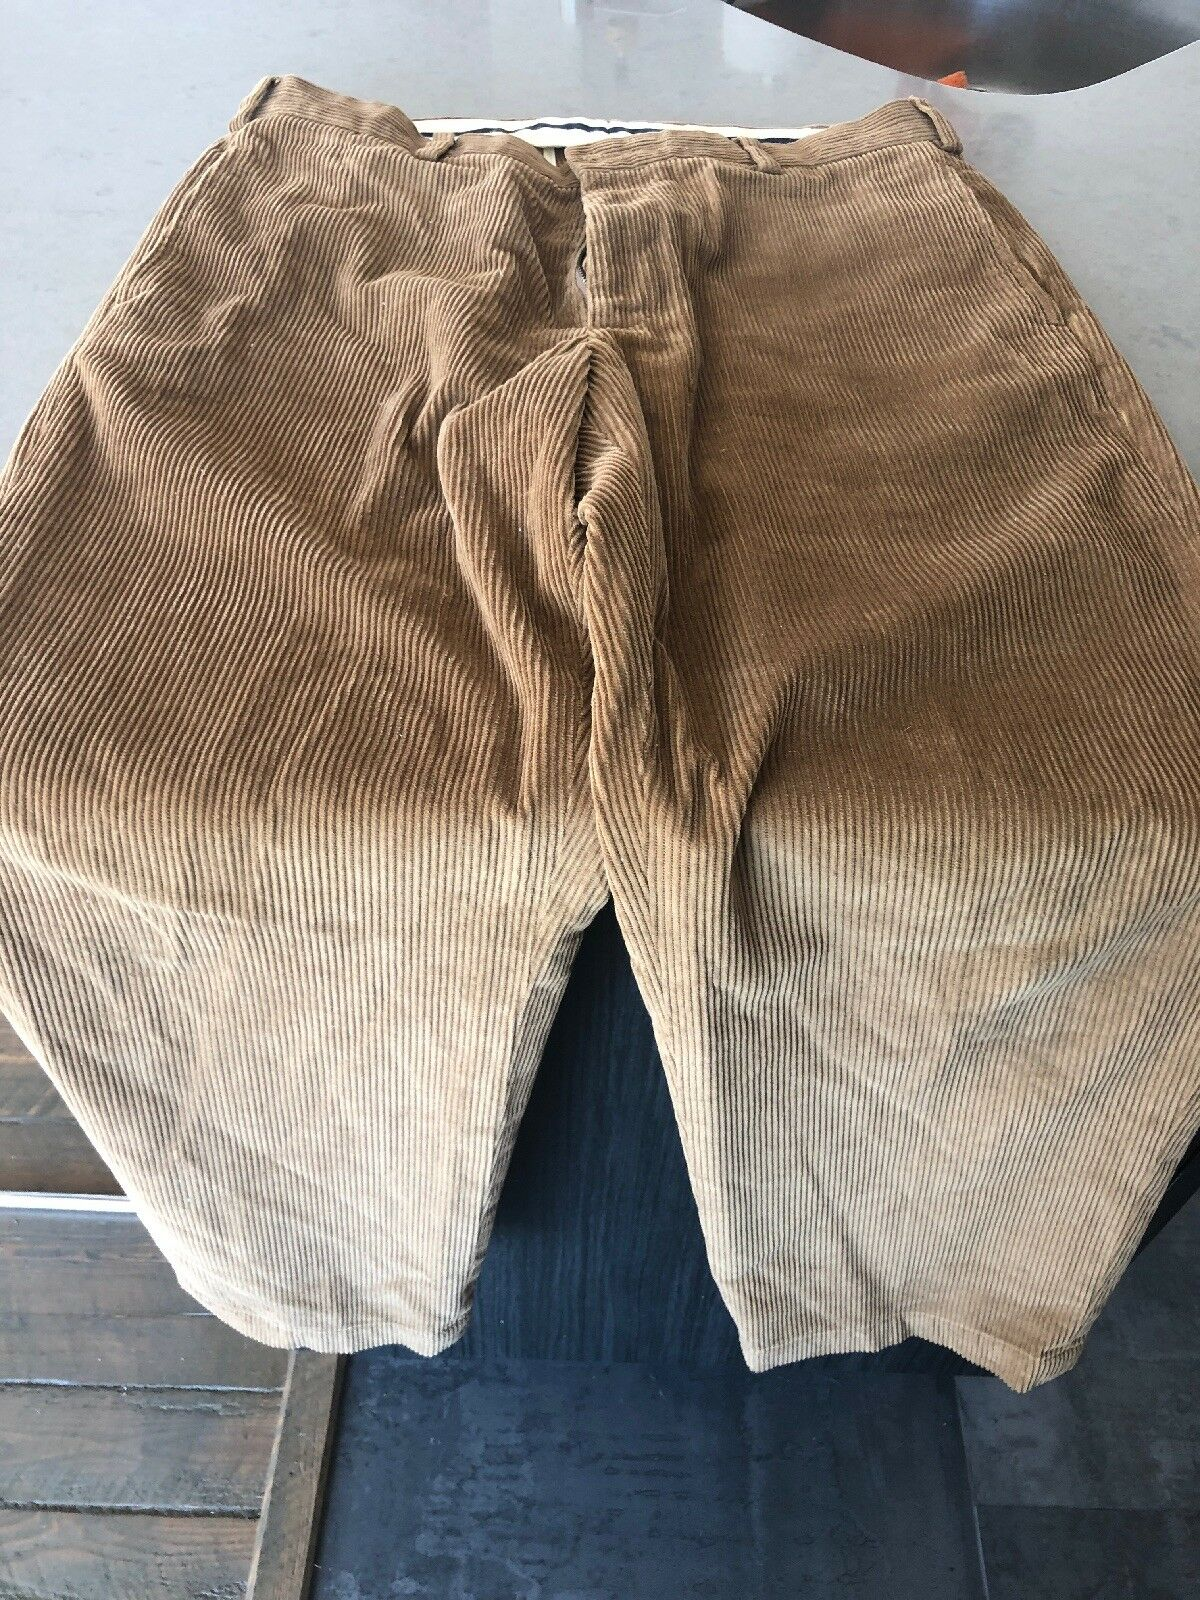 Mens Brooks Bredhers Corduroys Pants - Size 34 30 Brown - Mint condition